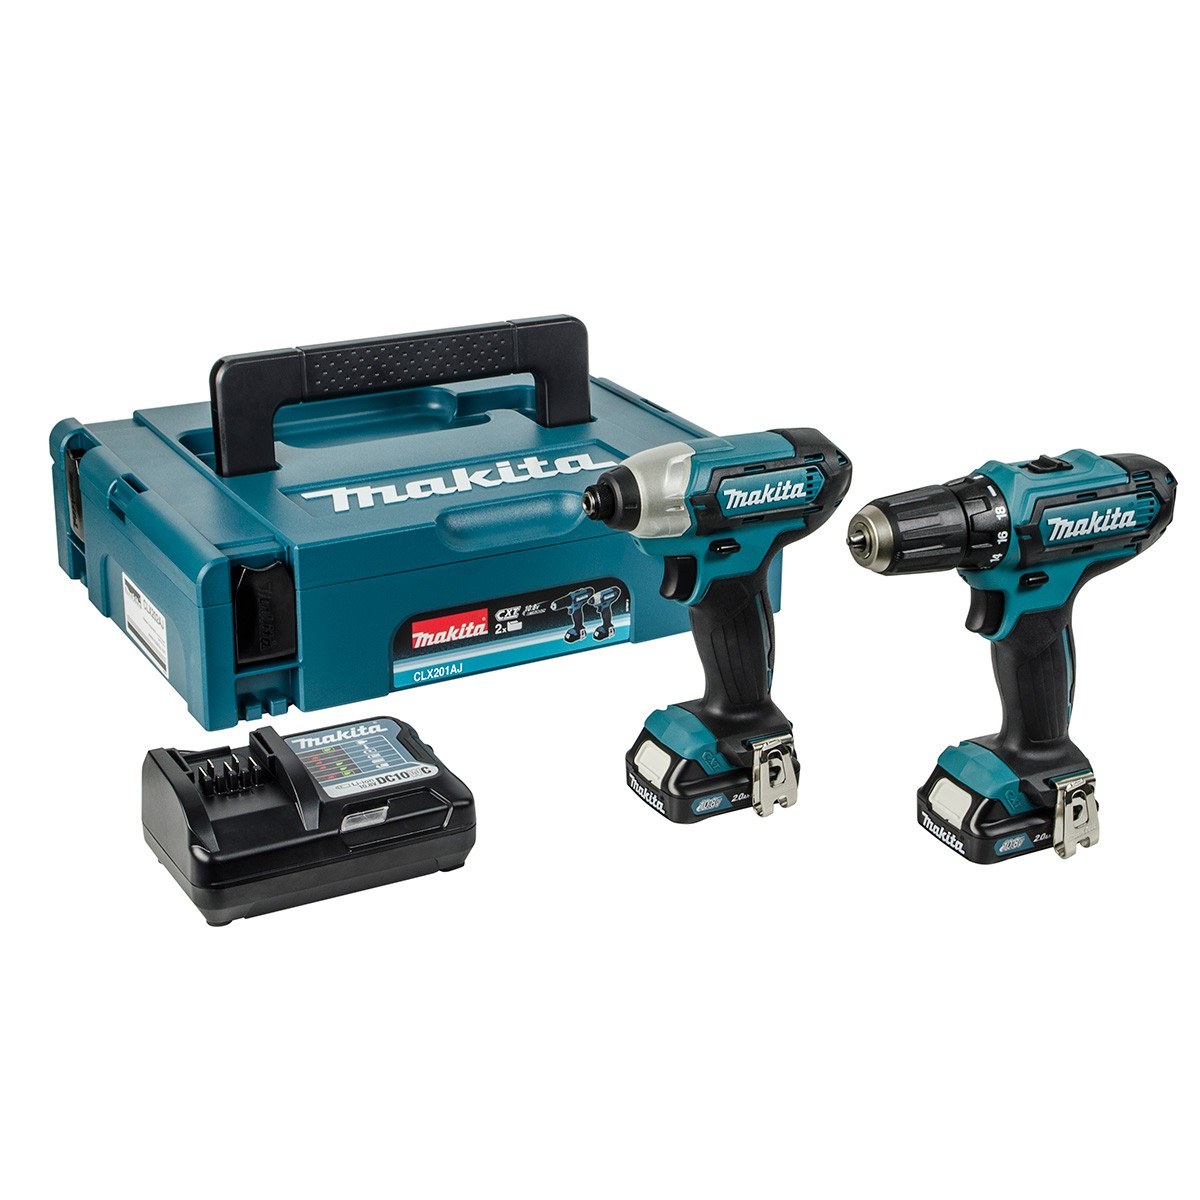 Makita CLX201AJ Drill Set 10.8v CXT Slide Twin Pack Drill Driver/Impact Driver